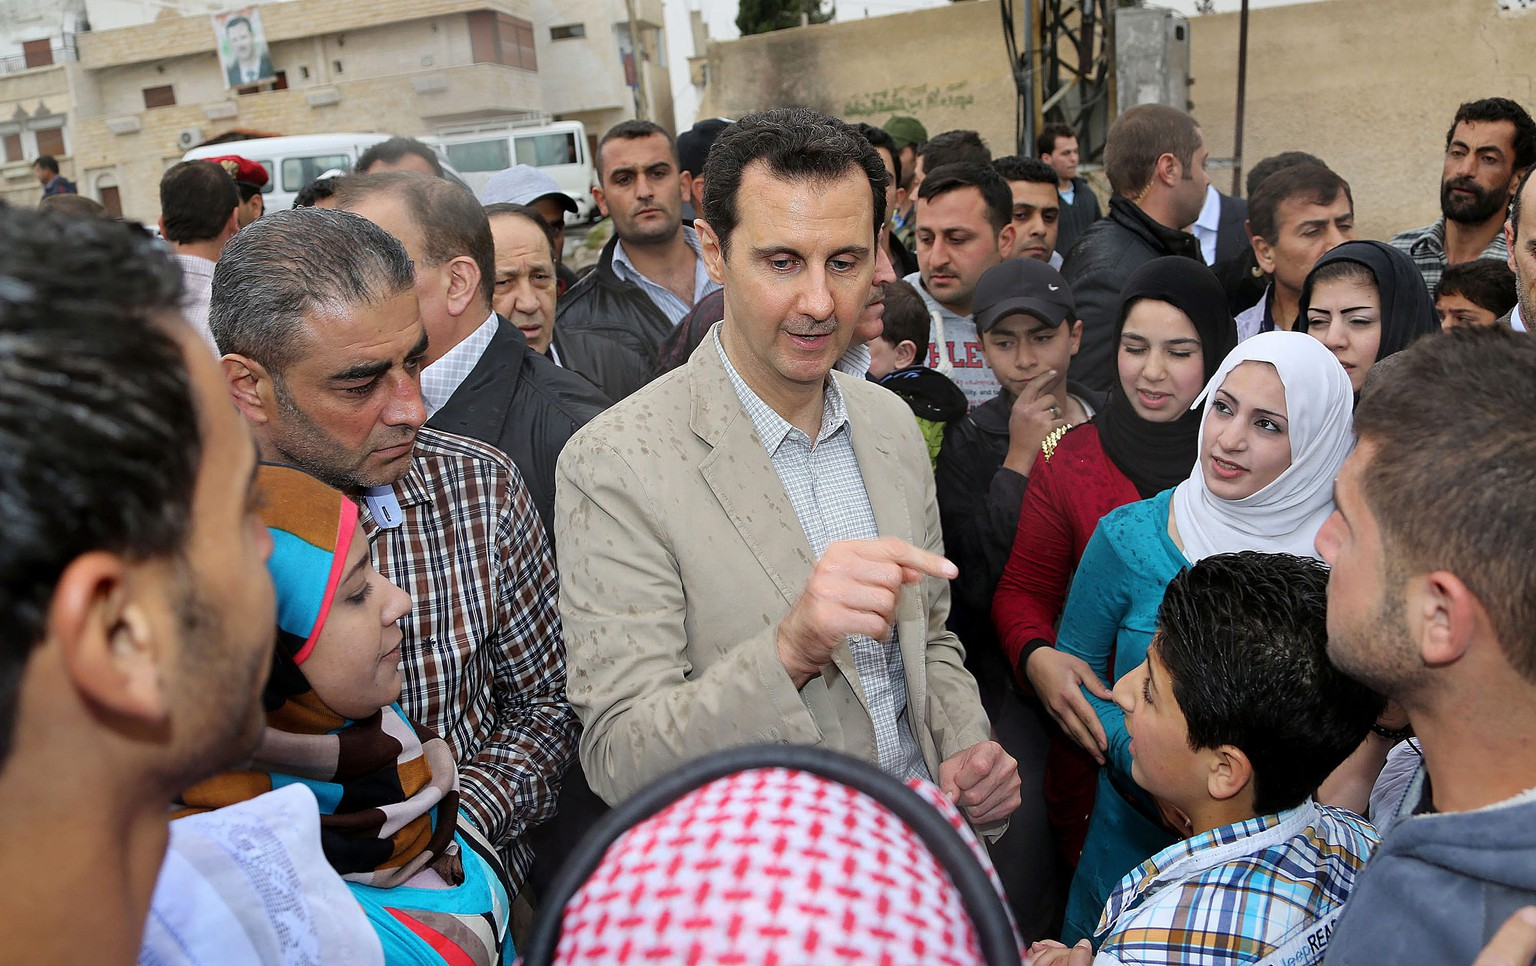 epa04174373 A handout picture made available by the official government Syrian Arab News Agency (SANA) shows Syrian president Bashar al-Assad (C) during his visit to the predominantly Christian city of Maaloula, Syria, 20 April 2014. Syrian President Bashar al-Assad marked Easter by visiting a Christian town near Damascus recently recaptured by his forces, state media reported. Al-Assad's government has frequently portrayed itself as protecting Syria's religious minorities, a portrayal aided by the increasing dominance of hardline Islamist groups and jihadists in the armed opposition.  EPA/SANA / HANDOUT  HANDOUT EDITORIAL USE ONLY/NO SALES